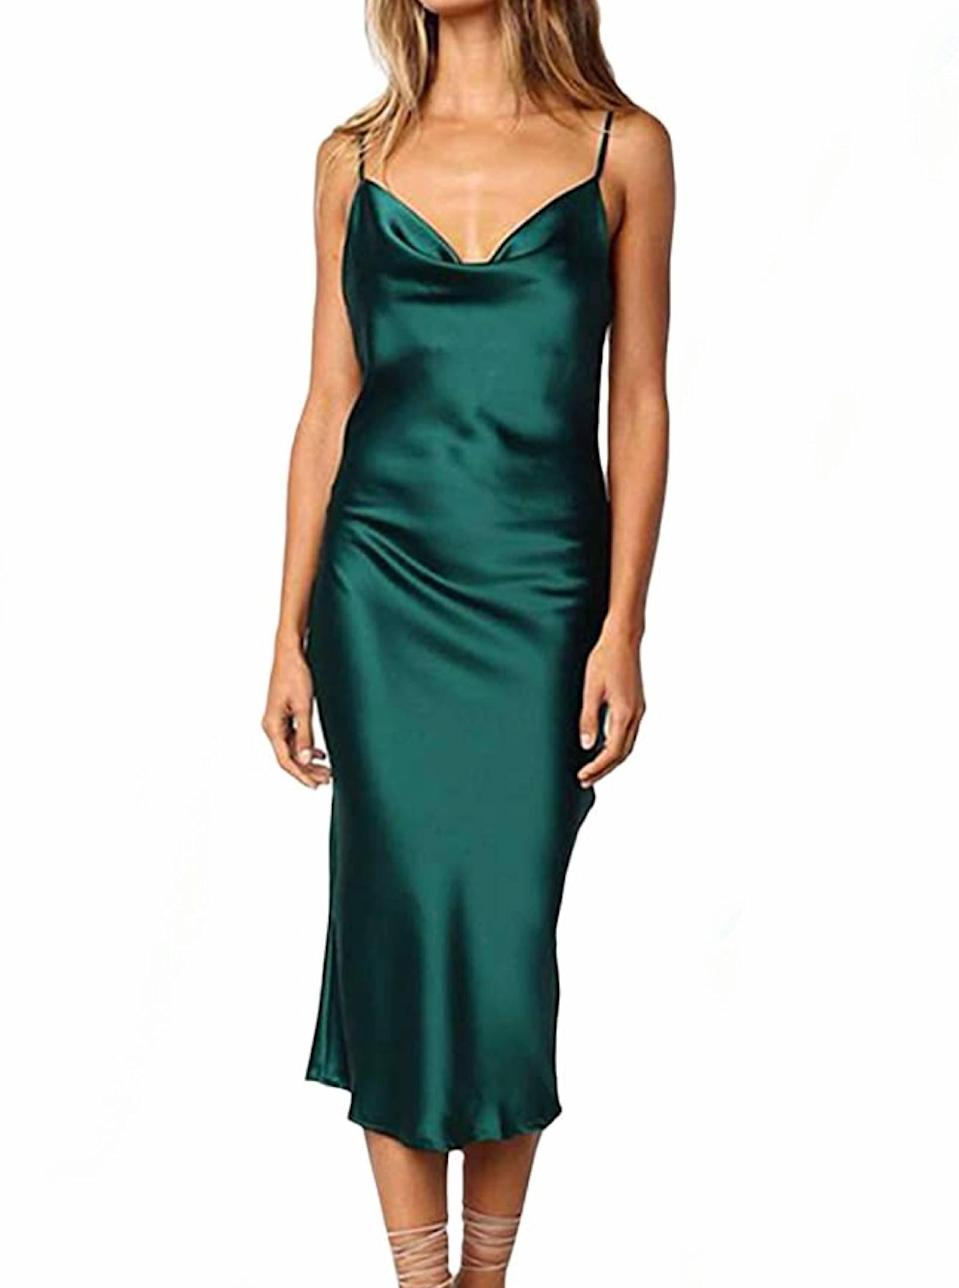 """Choose between a long list of hues for this classic silky number that can easily be dressed up or down. $18, Amazon. <a href=""""https://www.amazon.com/XXXITICAT-Sleeveless-Spaghetti-Cocktail-Evening/dp/B07MWV3PS1"""" rel=""""nofollow noopener"""" target=""""_blank"""" data-ylk=""""slk:Get it now!"""" class=""""link rapid-noclick-resp"""">Get it now!</a>"""